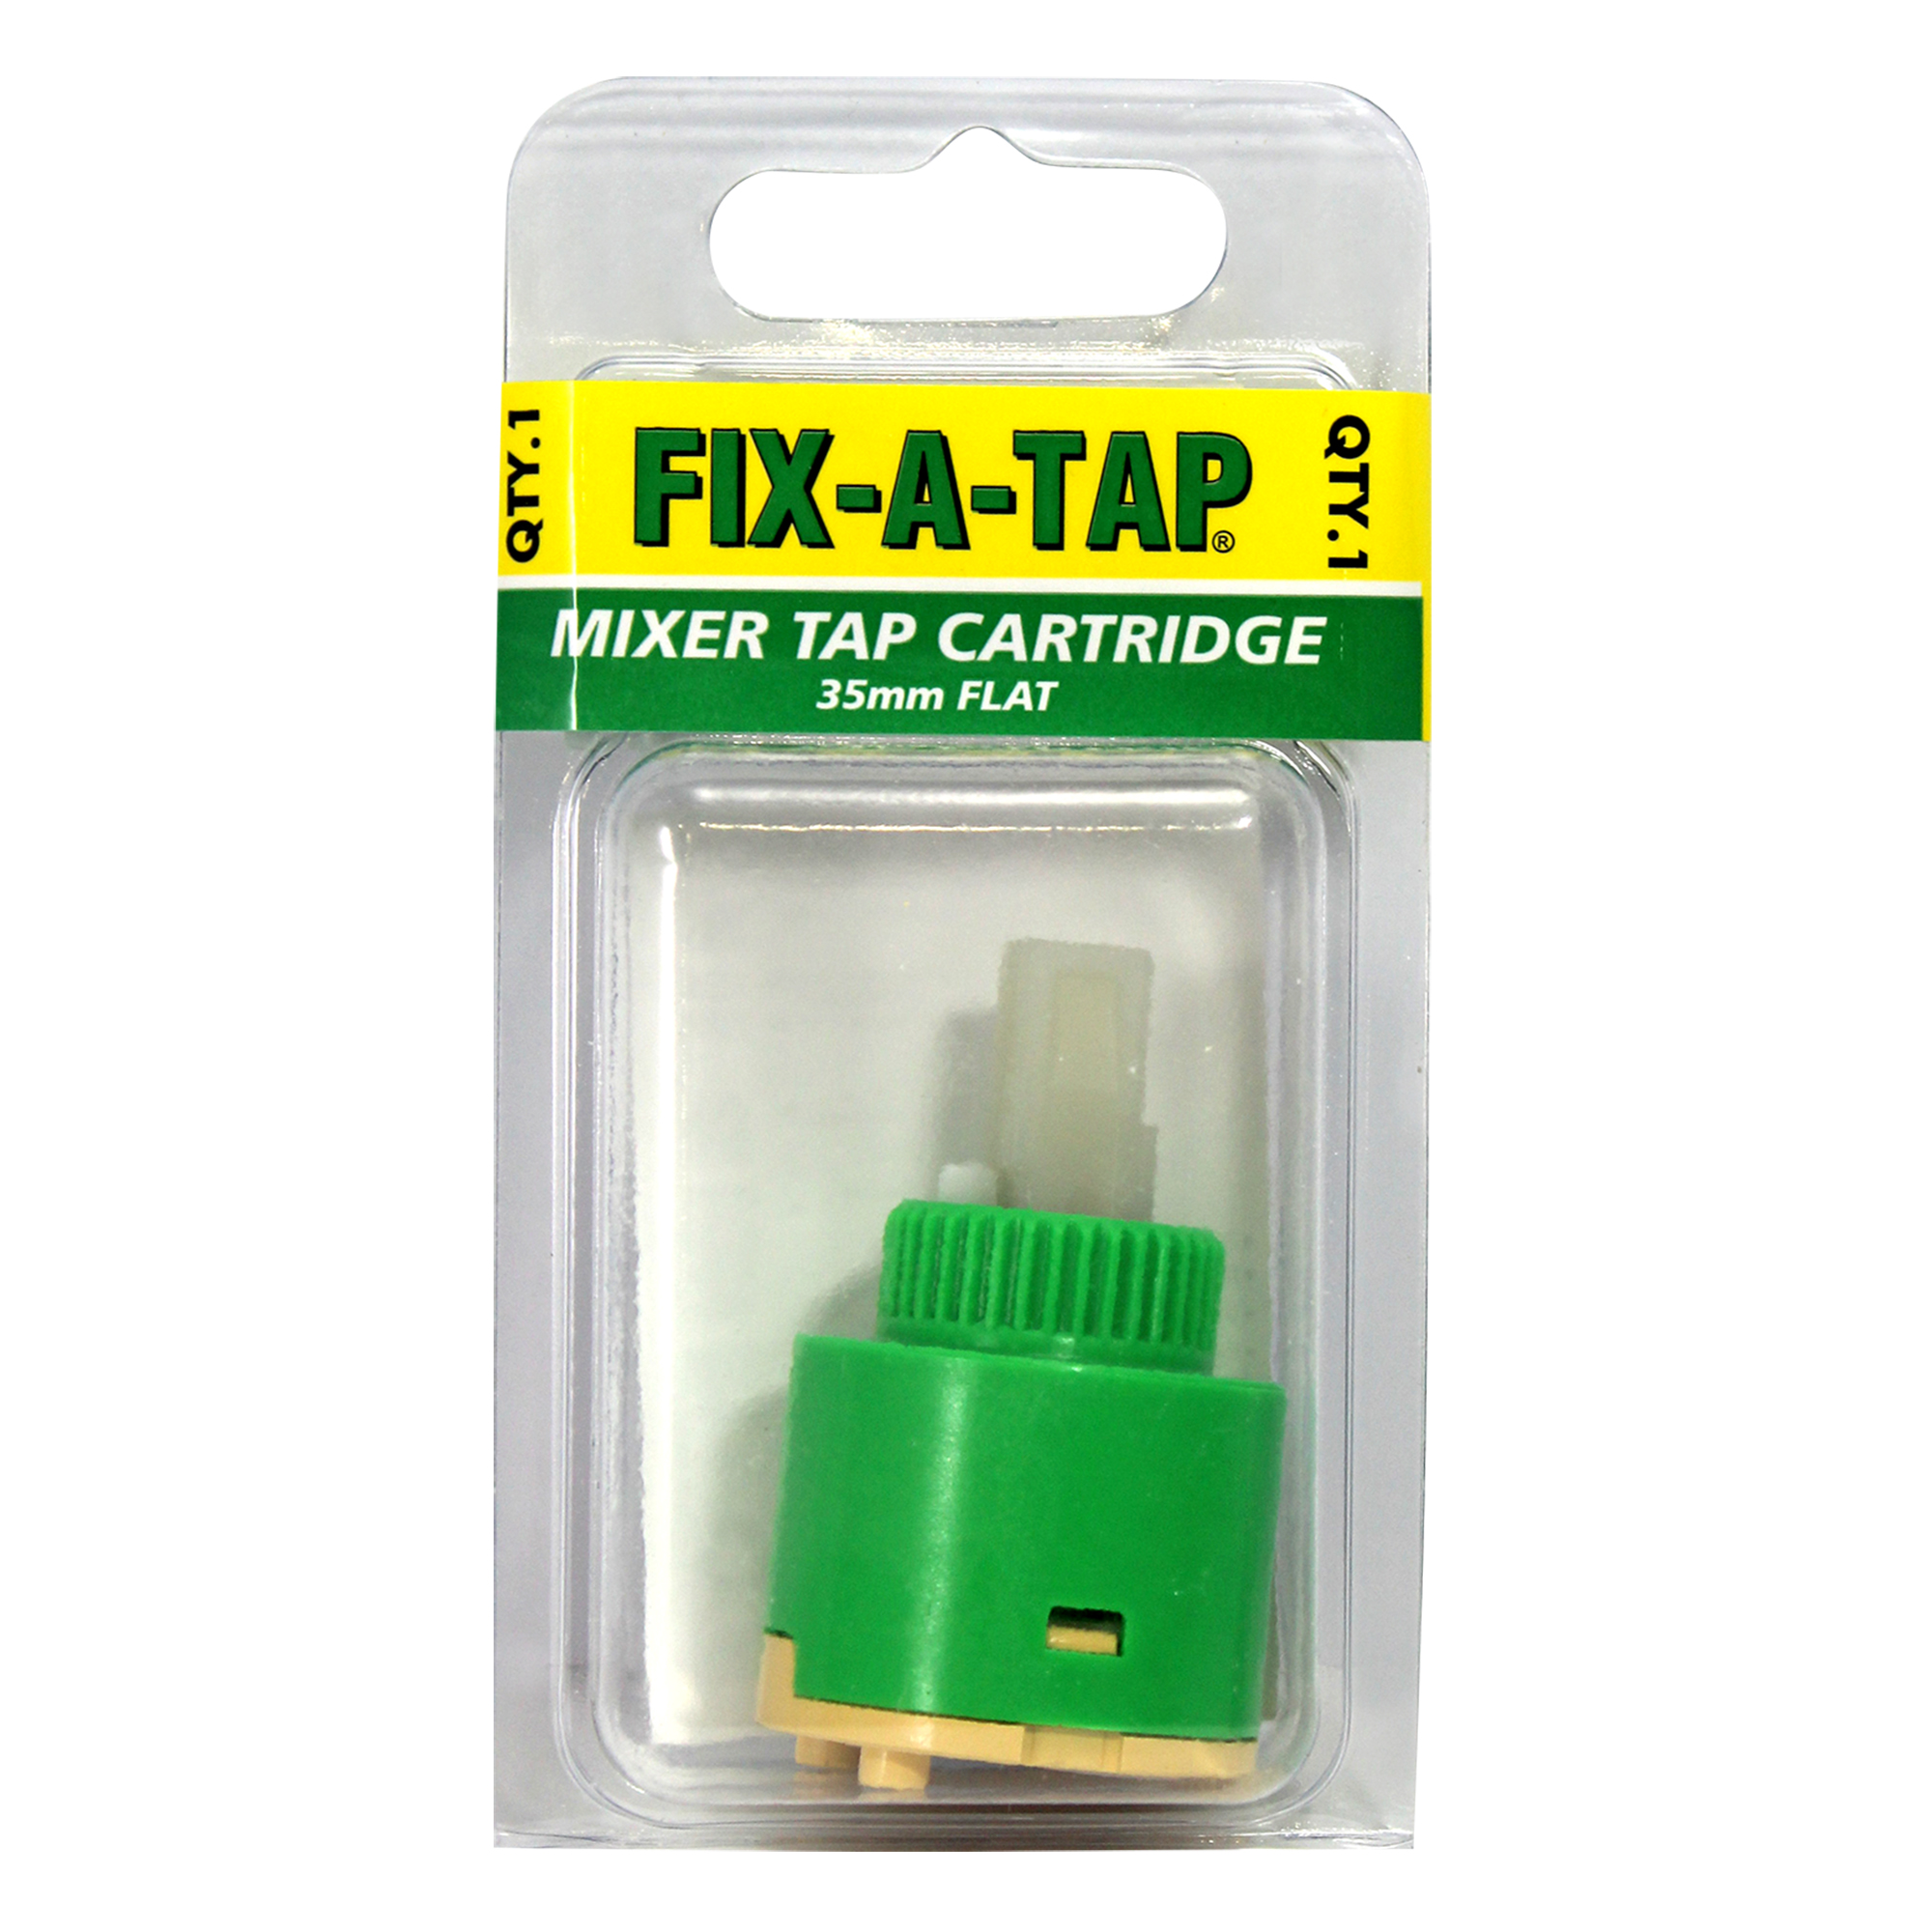 Standard Cartridges Mixer Tap Cartridges Fix A Tap